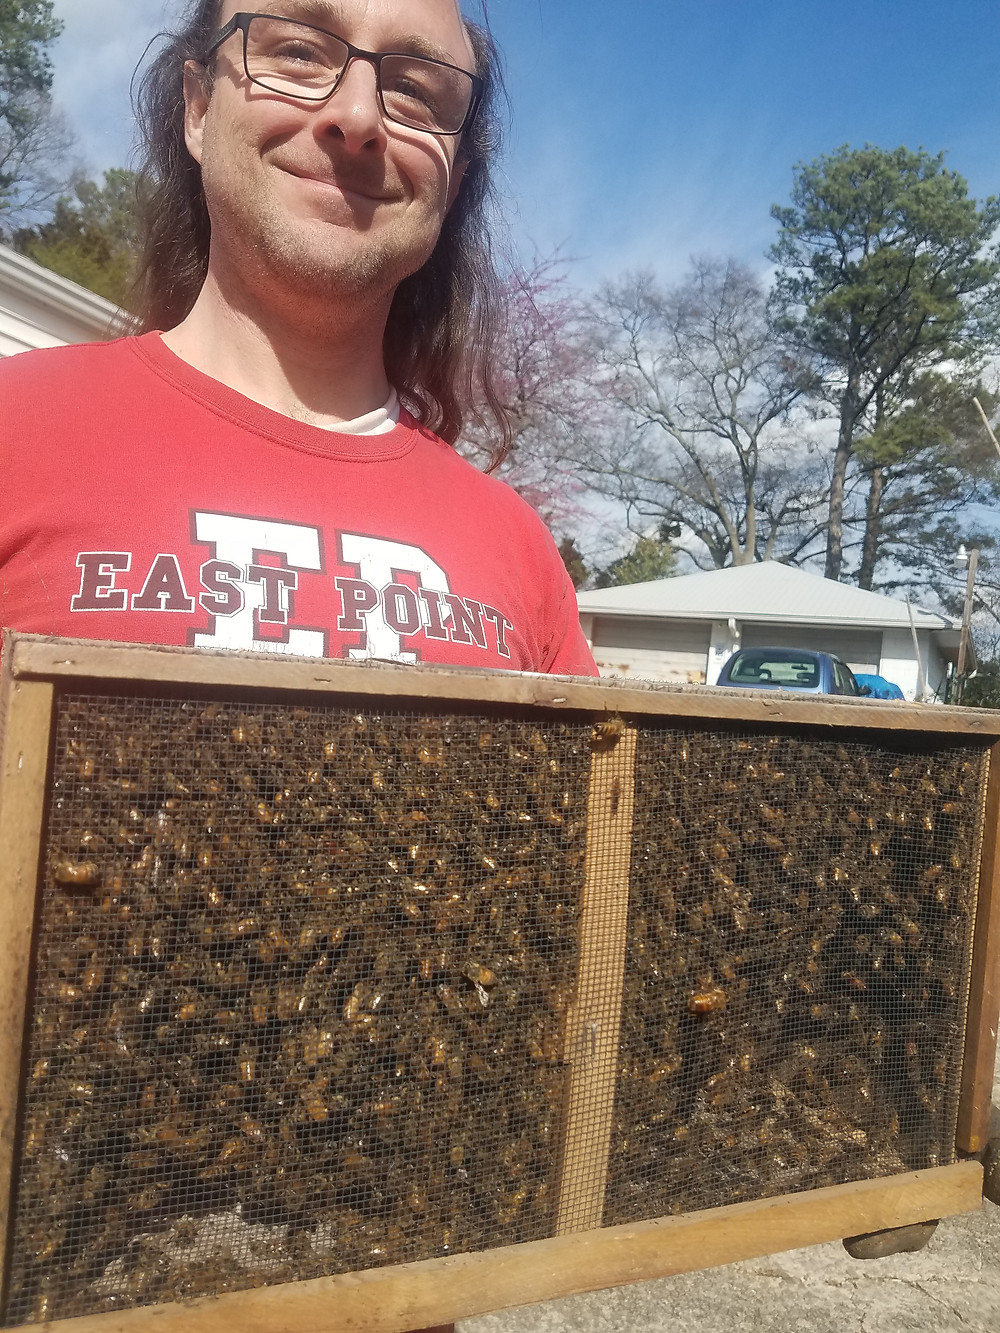 Jason and a new 3 lb. package of bees